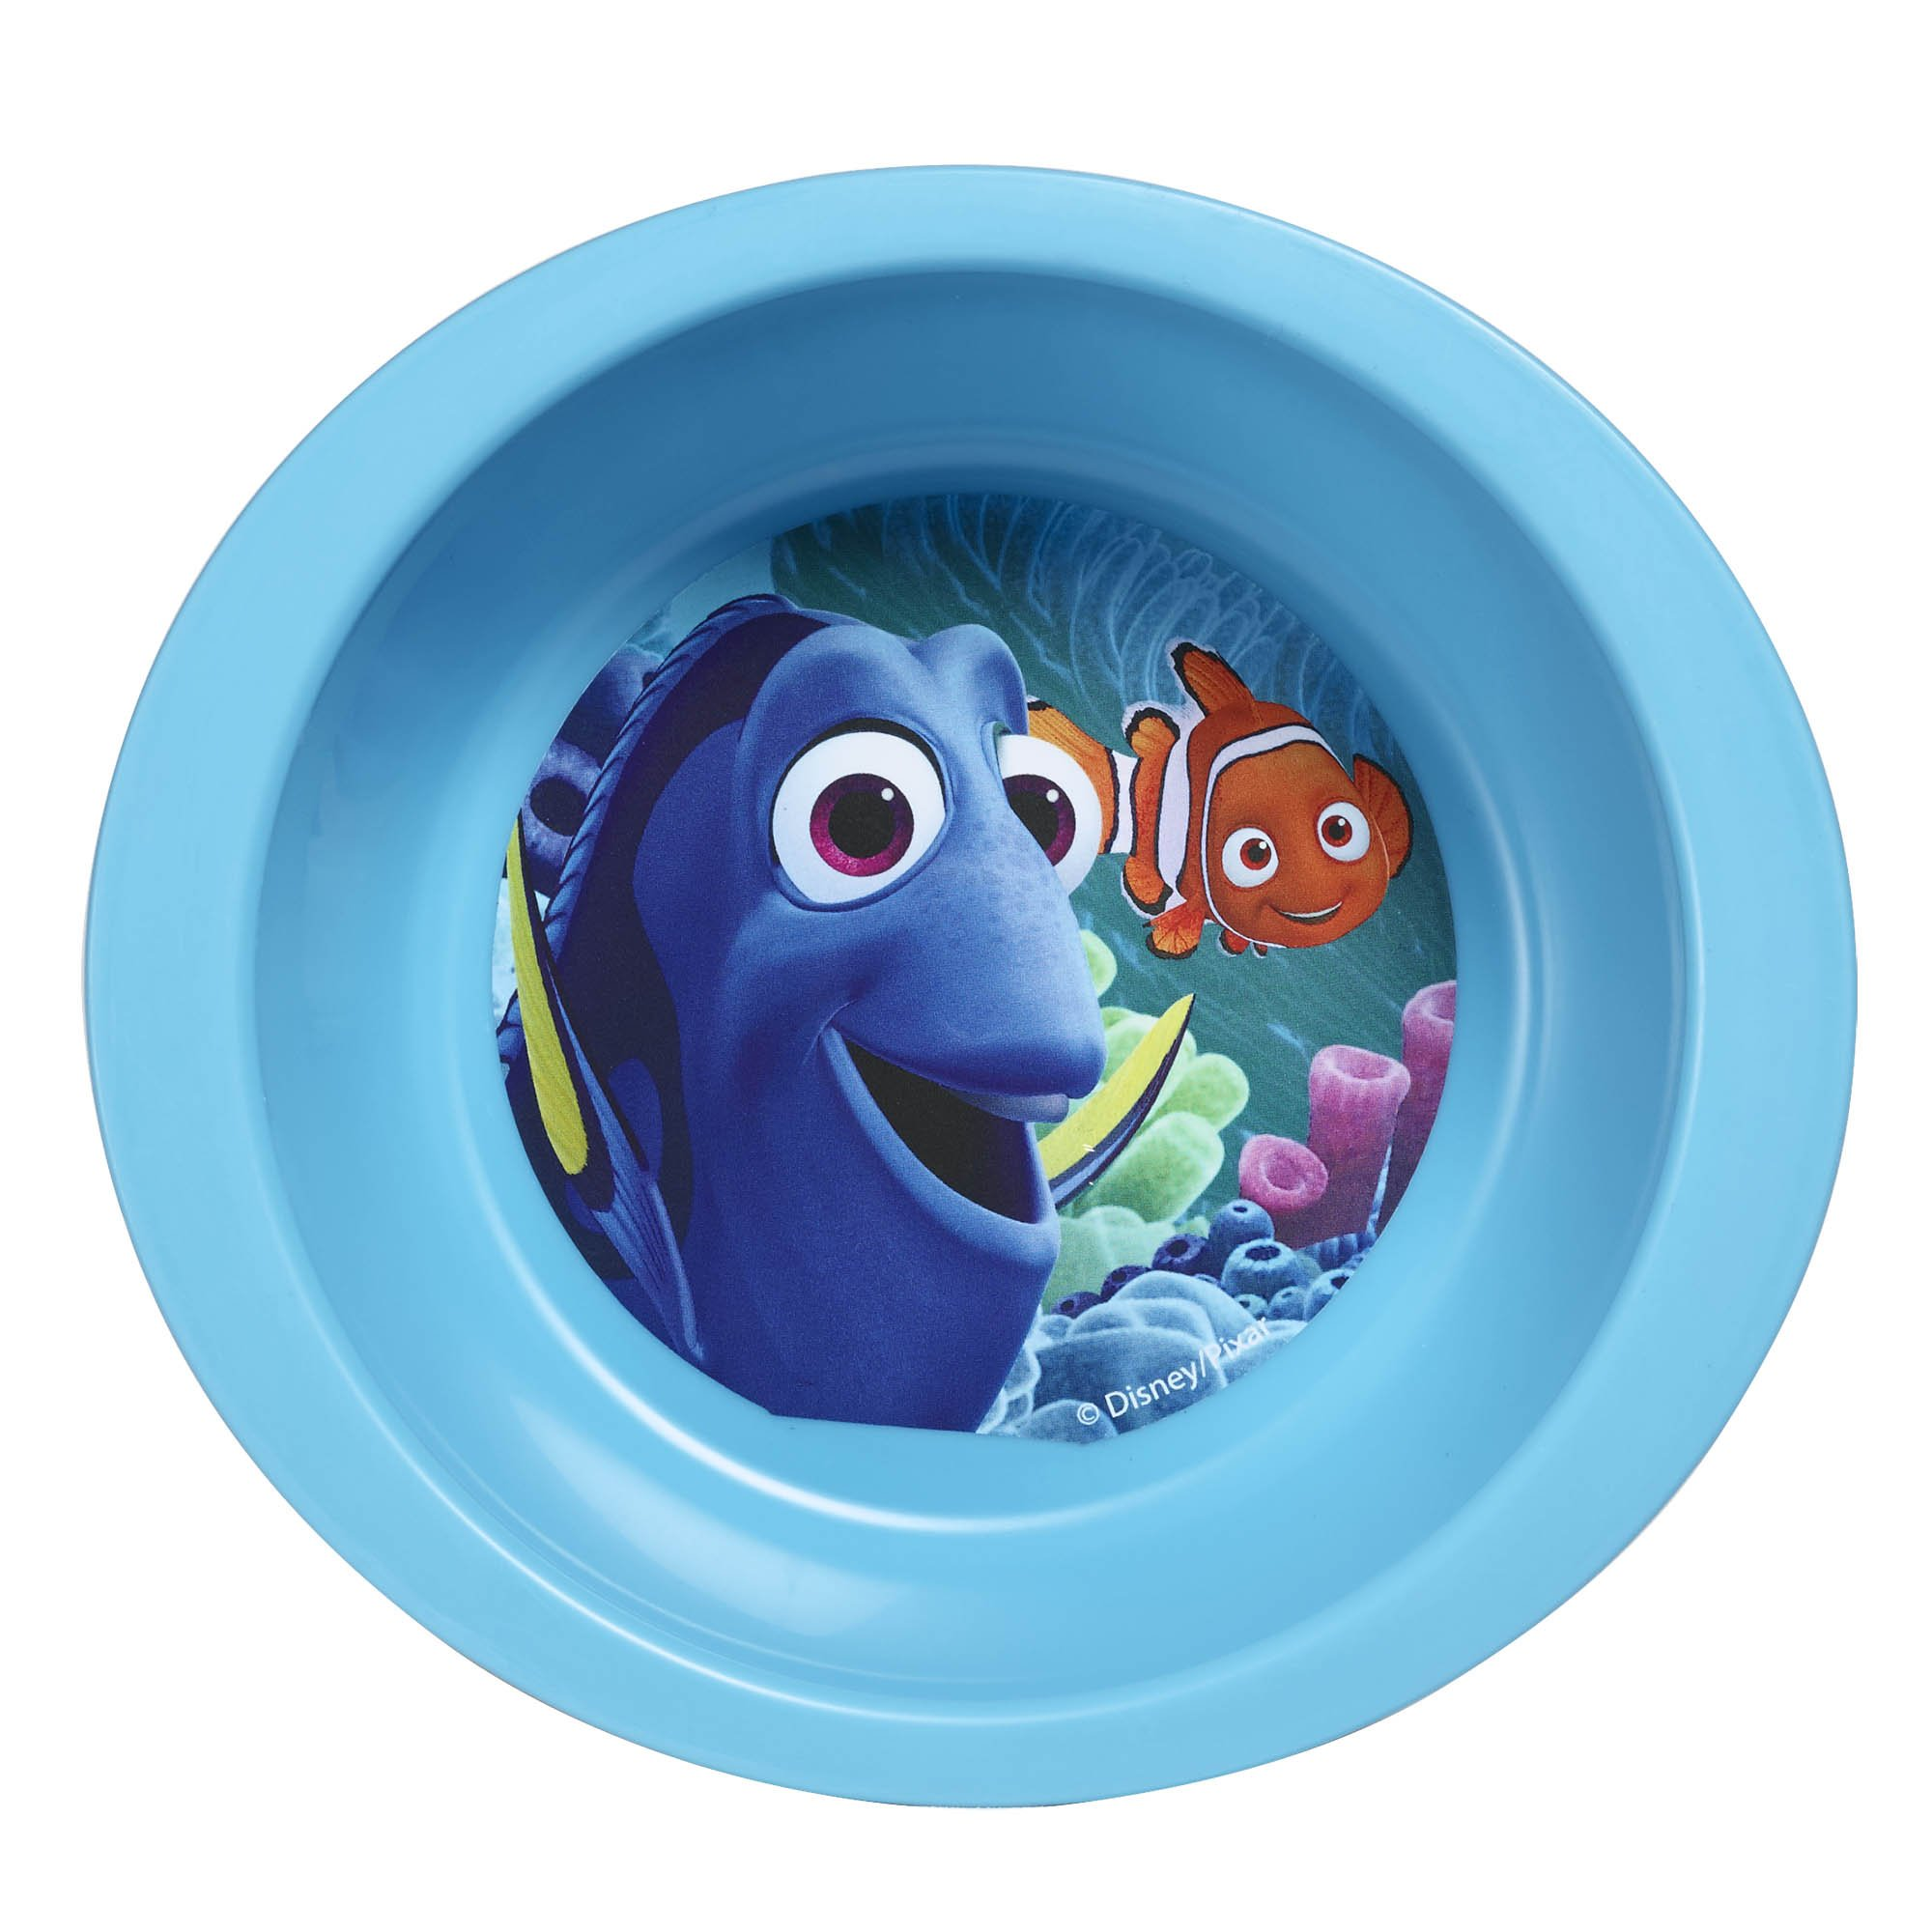 Feeding Charitable The First Years Disney/pixar Cars 3 Toddler Bowl Sz Color Without Return